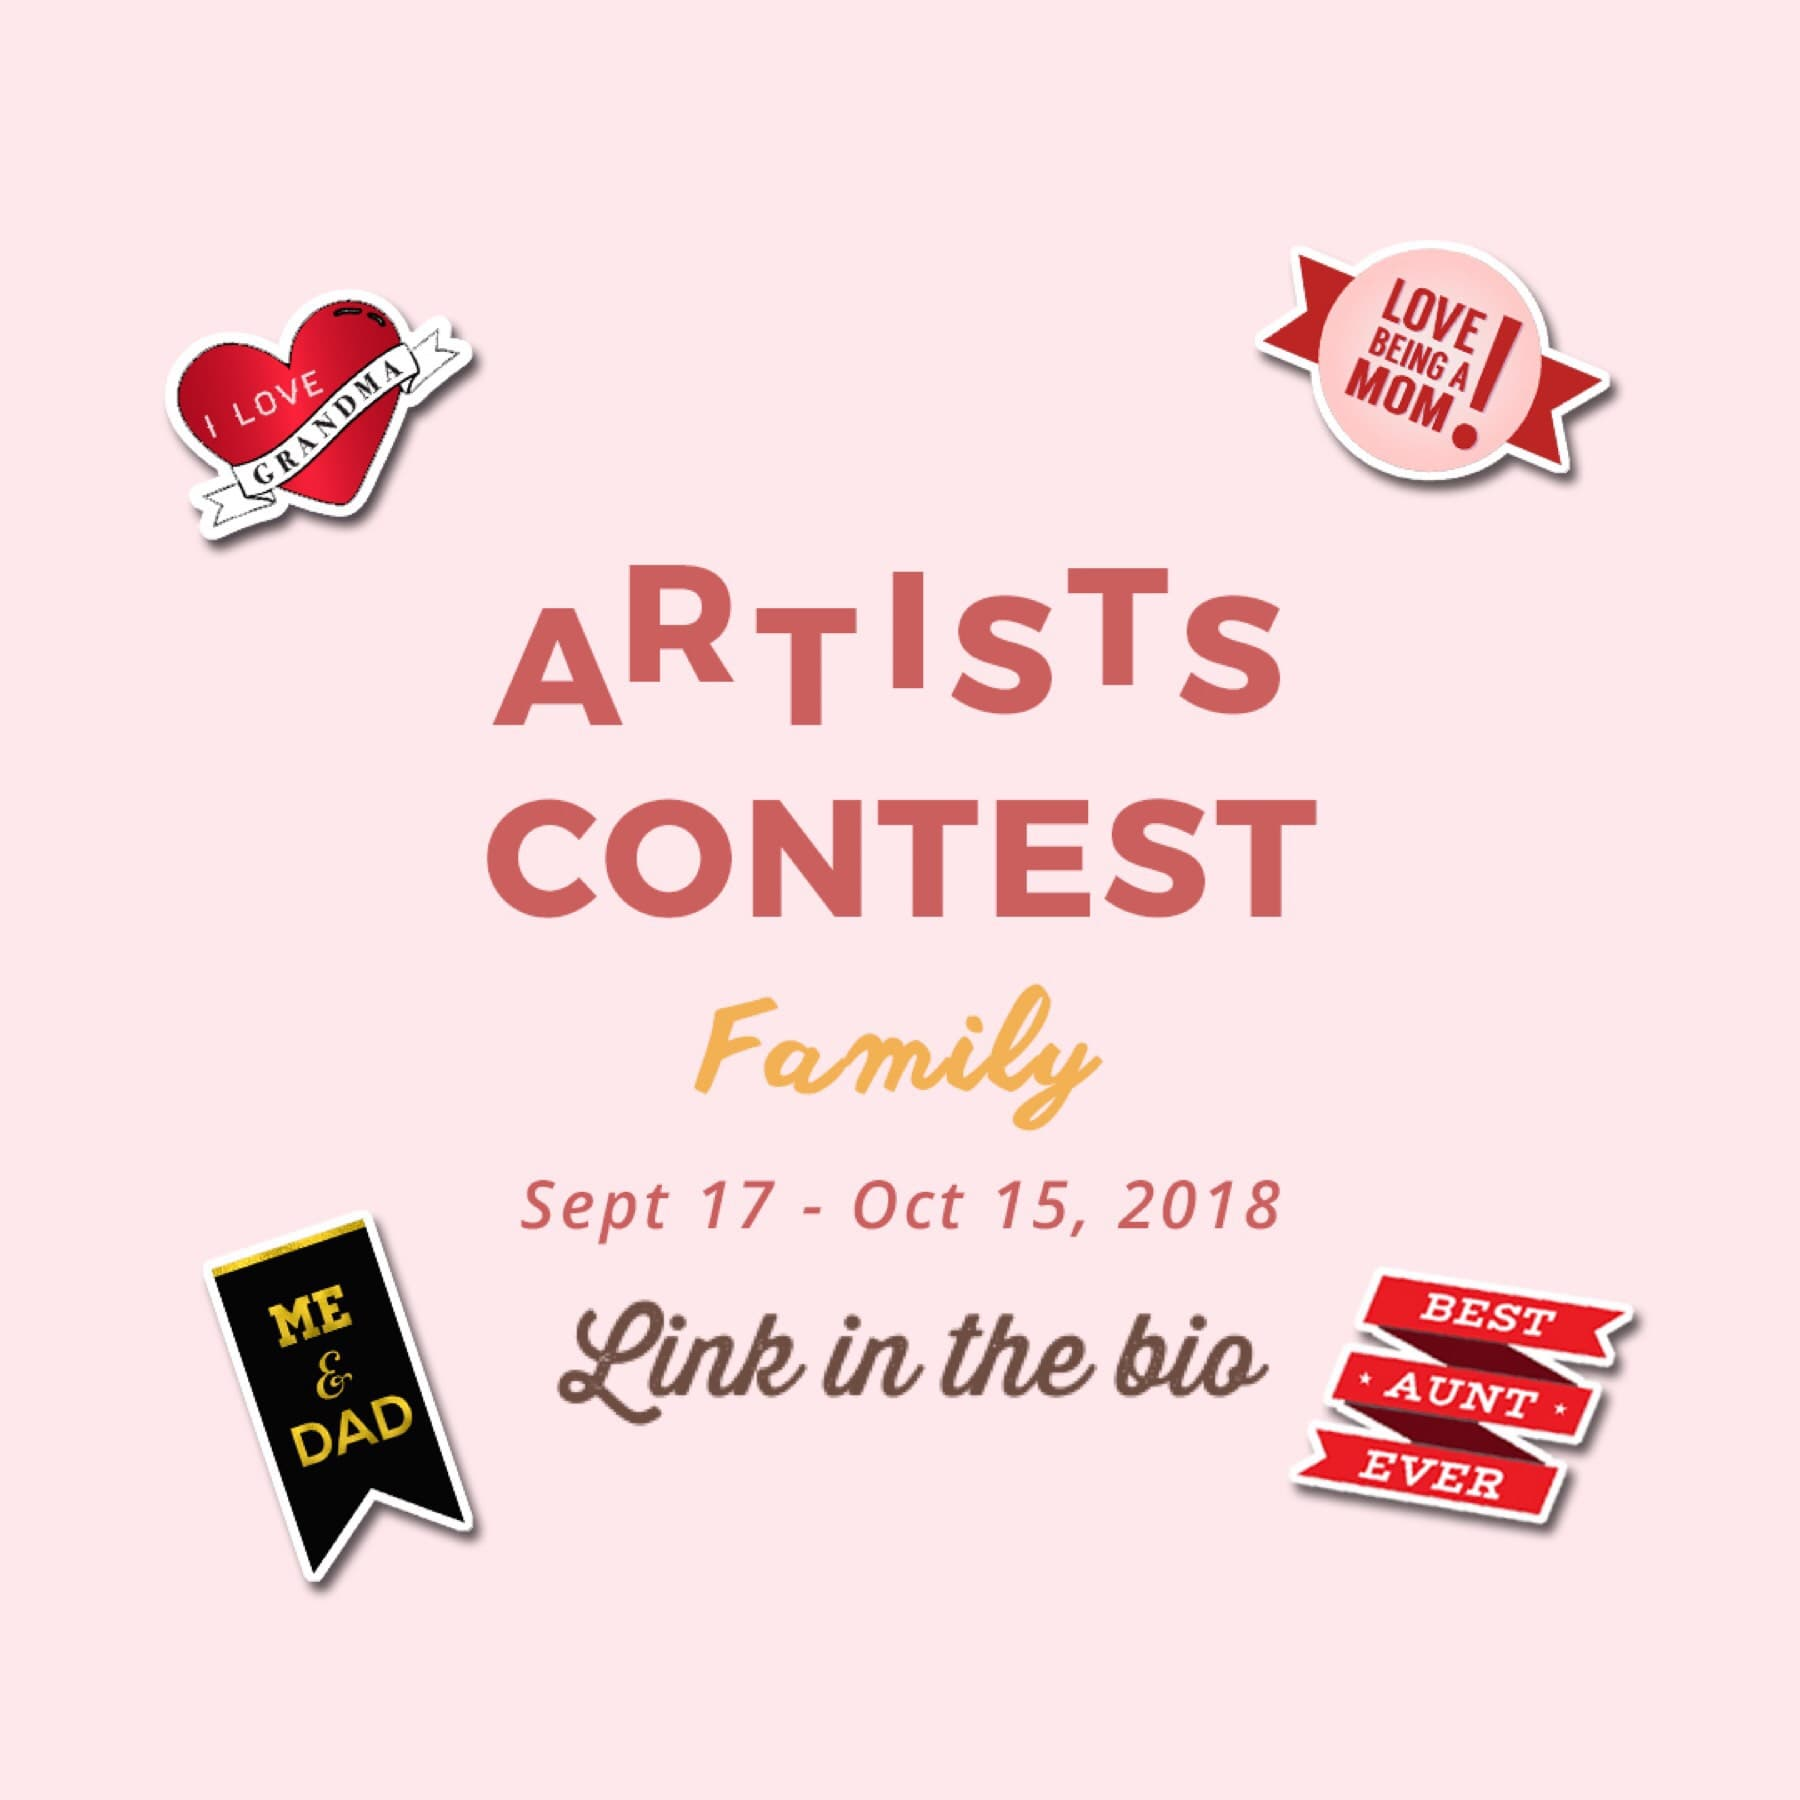 Artists' Contest: Family